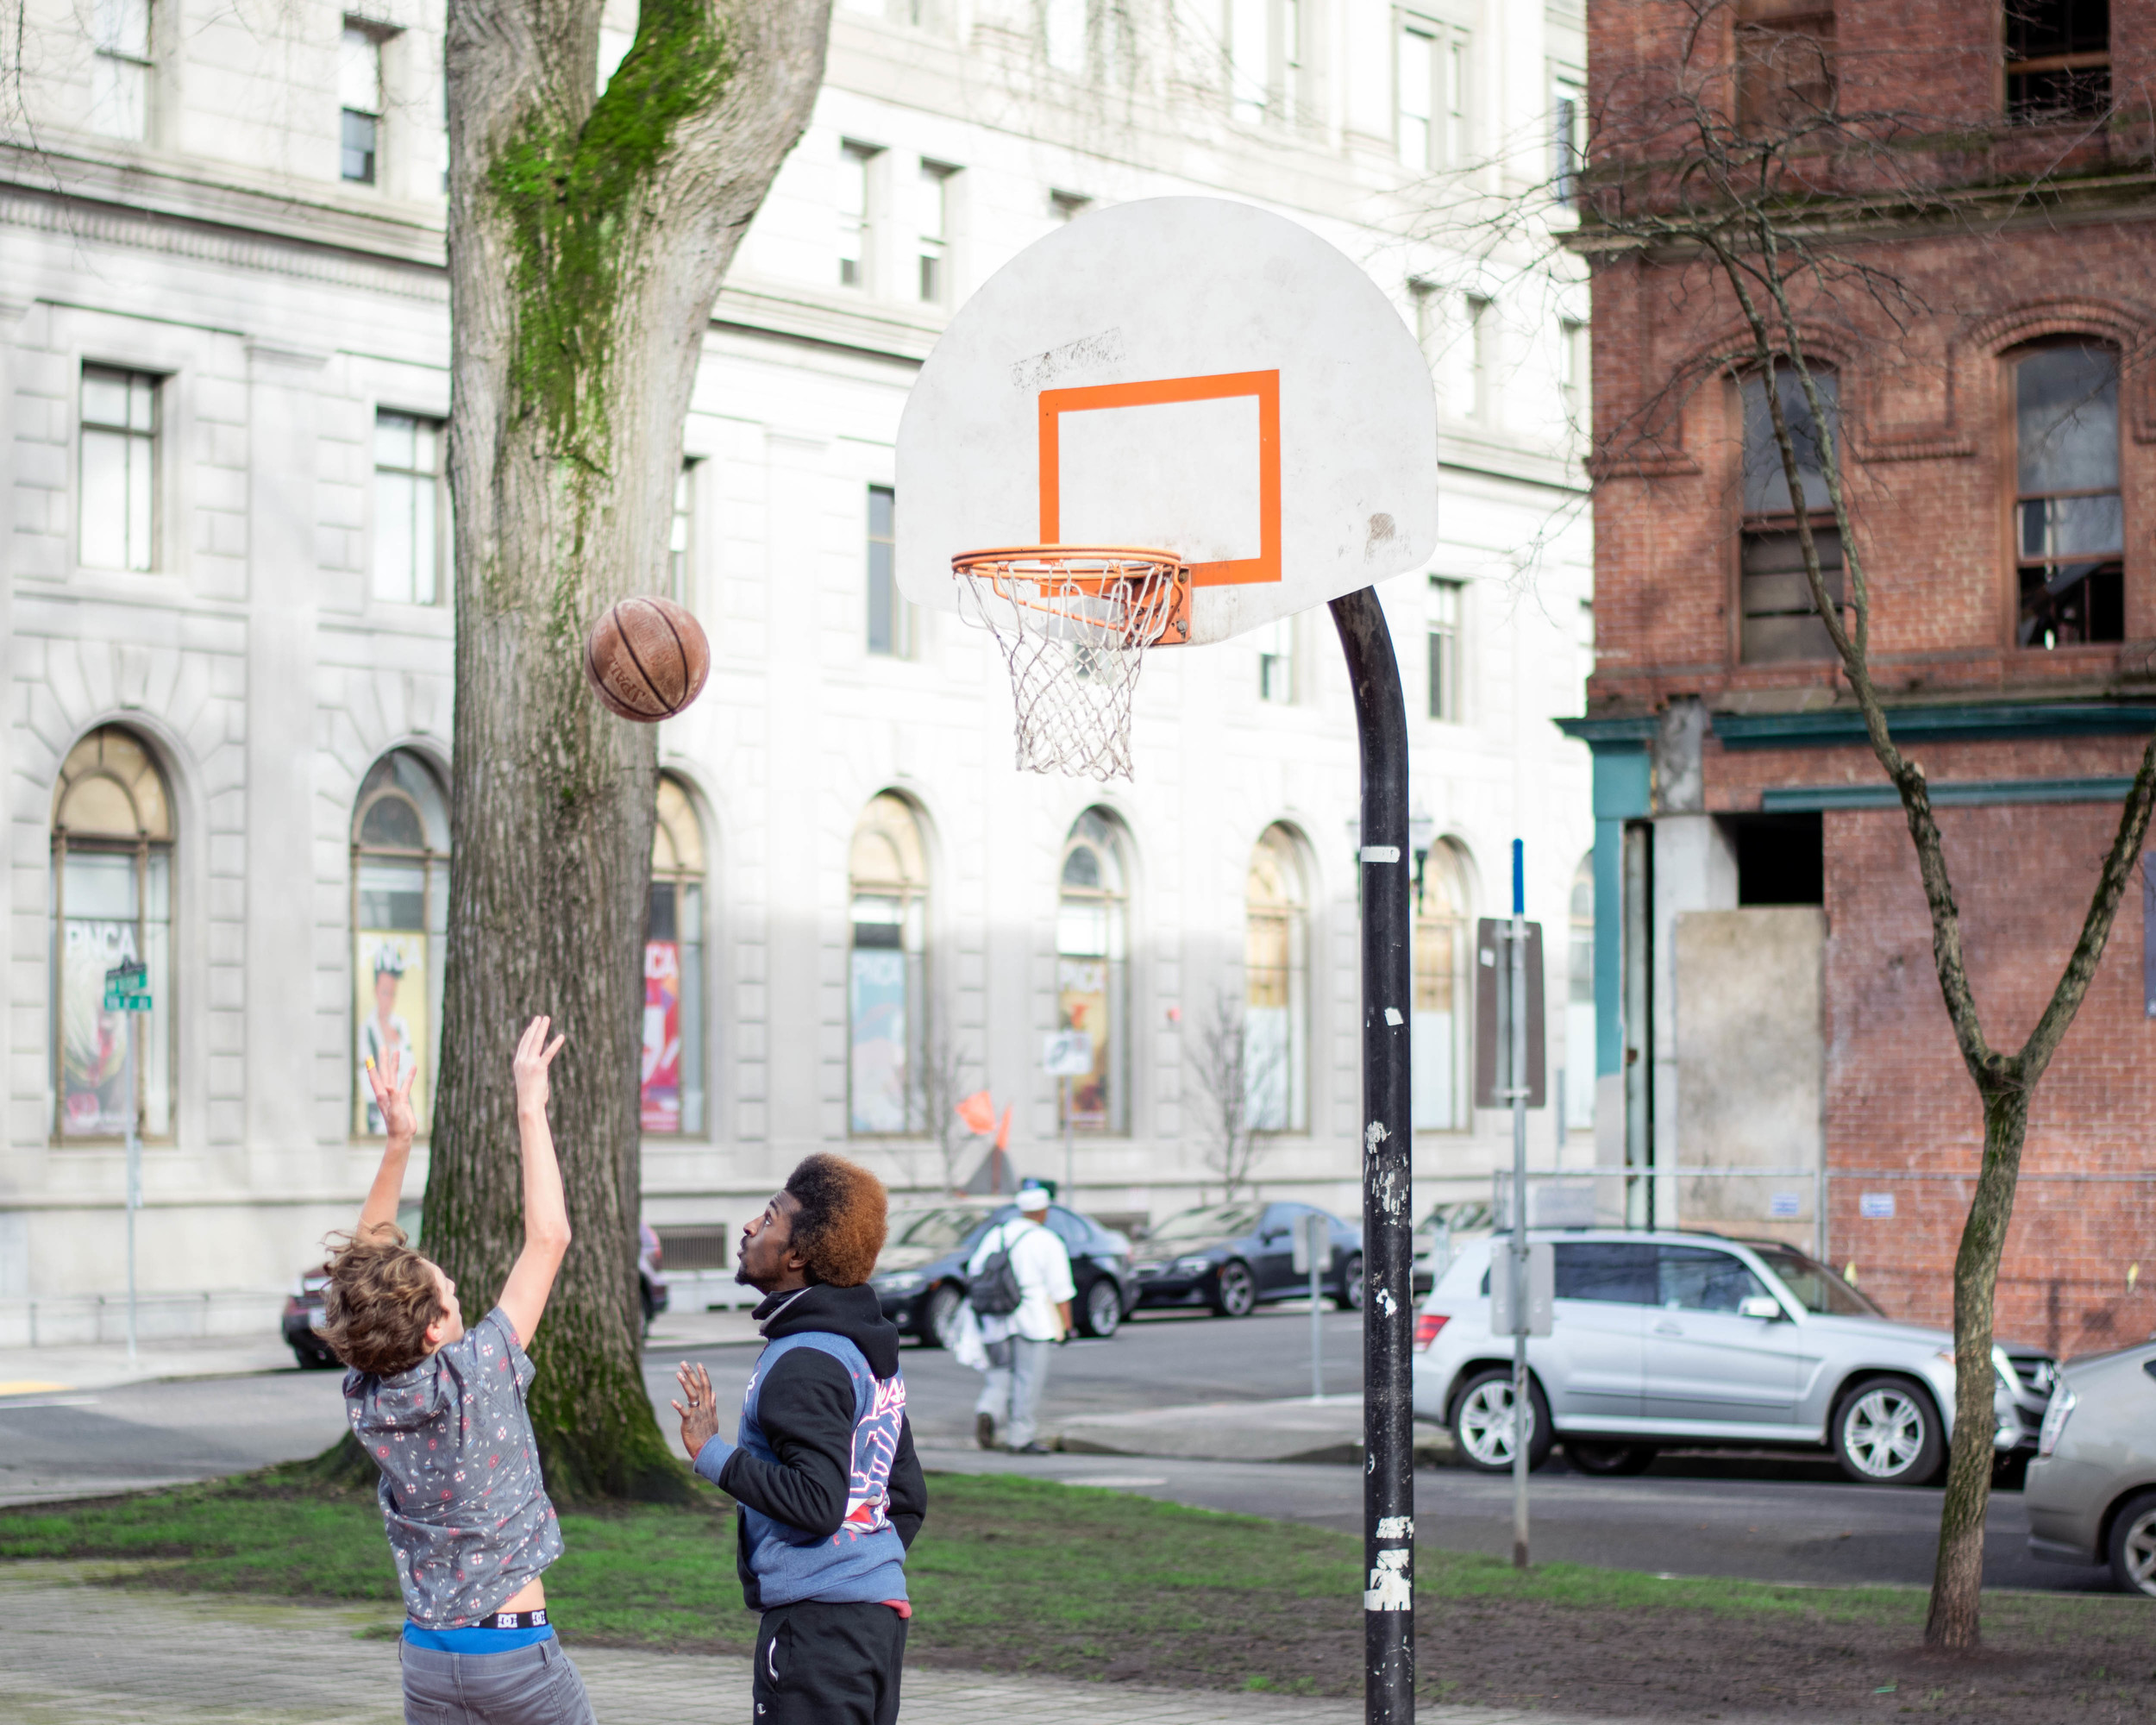 Shooting hoops - future Blazer | Portland, OR